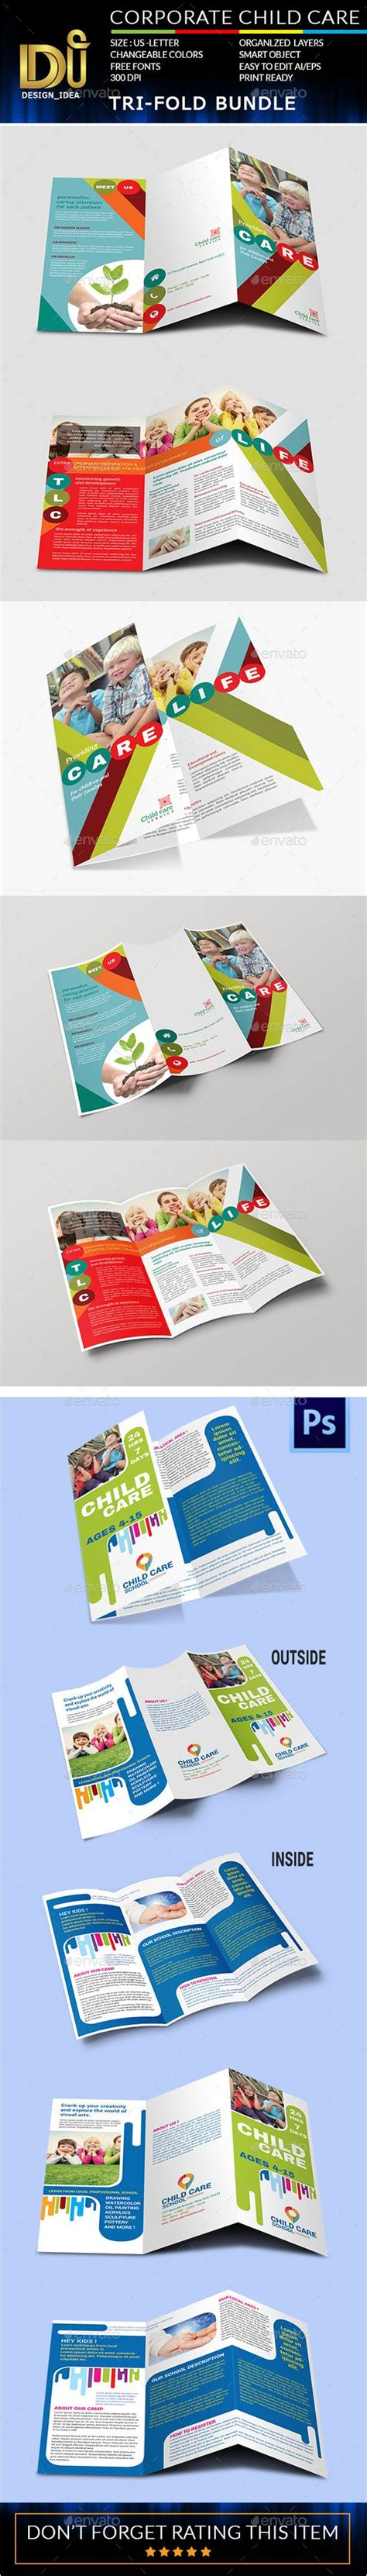 3 fold brochure template usefullhand net brochures templates and children on pinterest